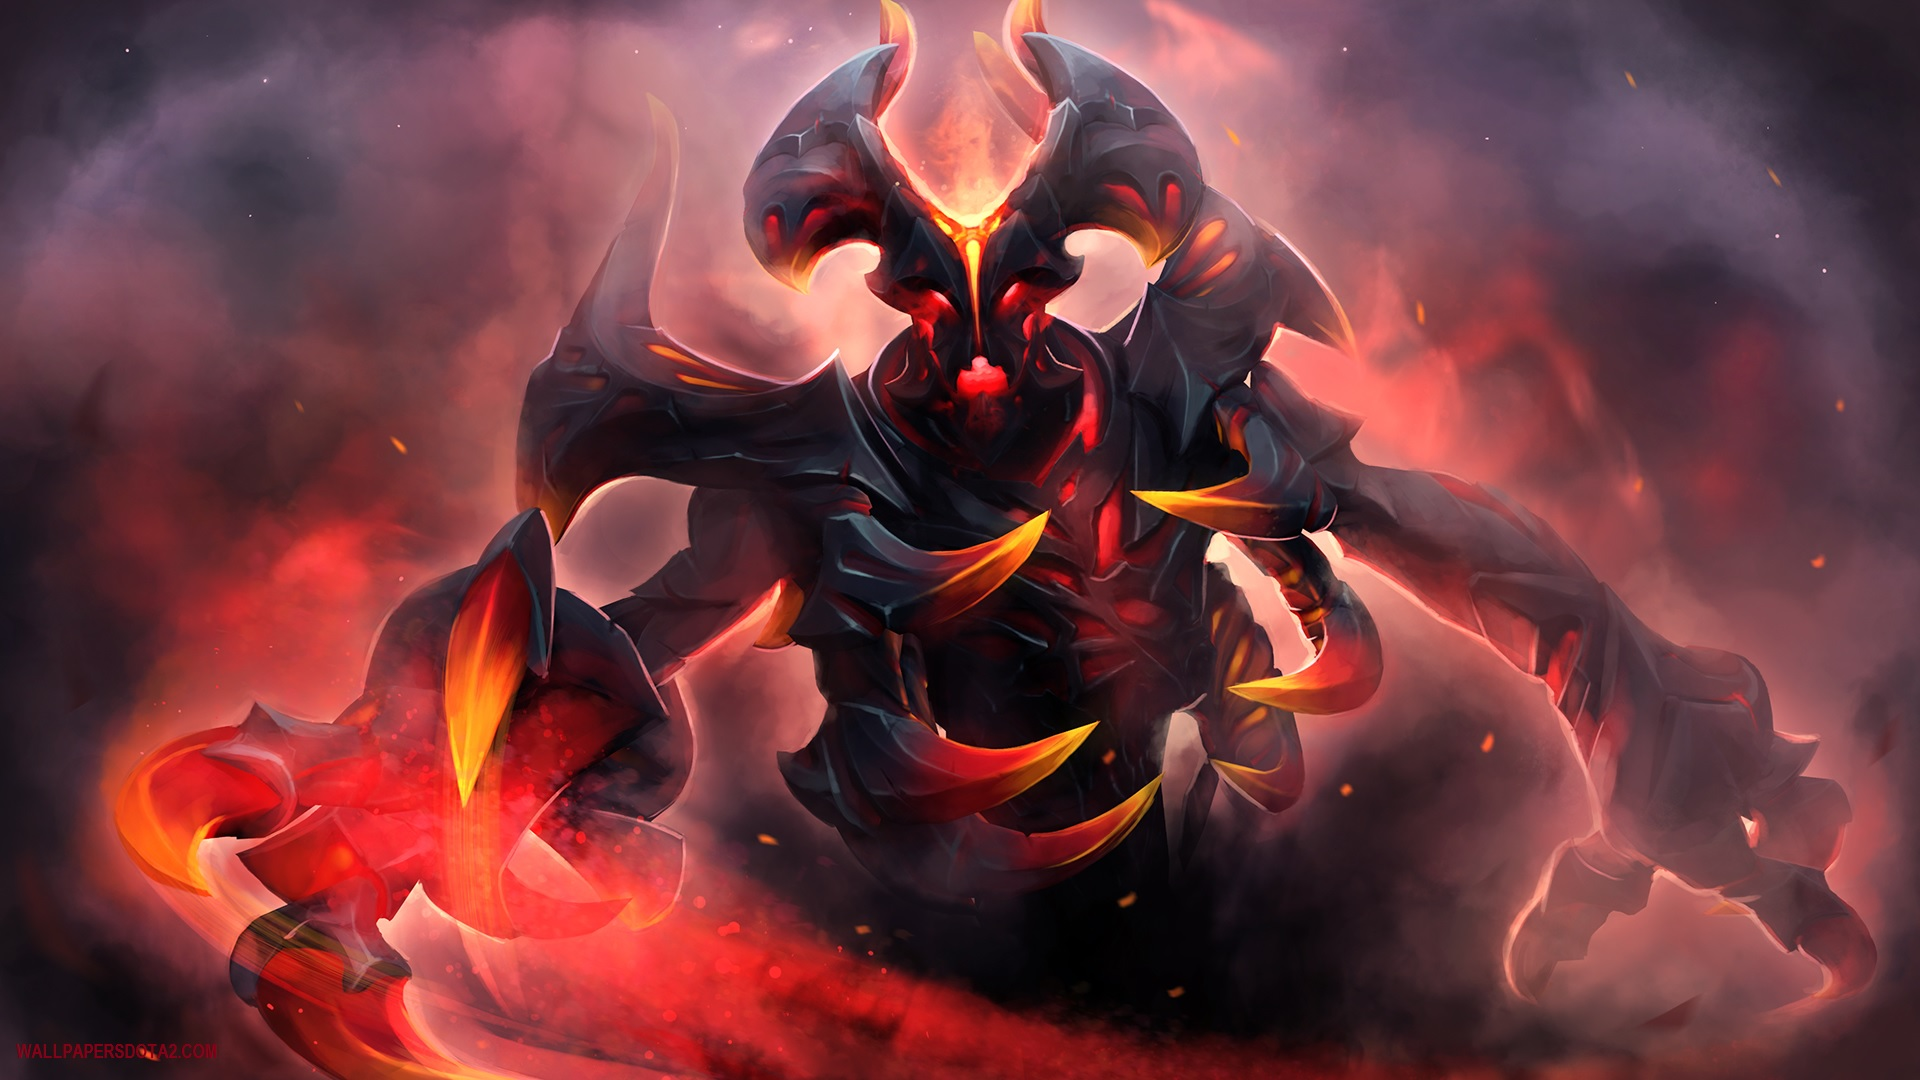 Cool computer backgrounds hd shadow fiend